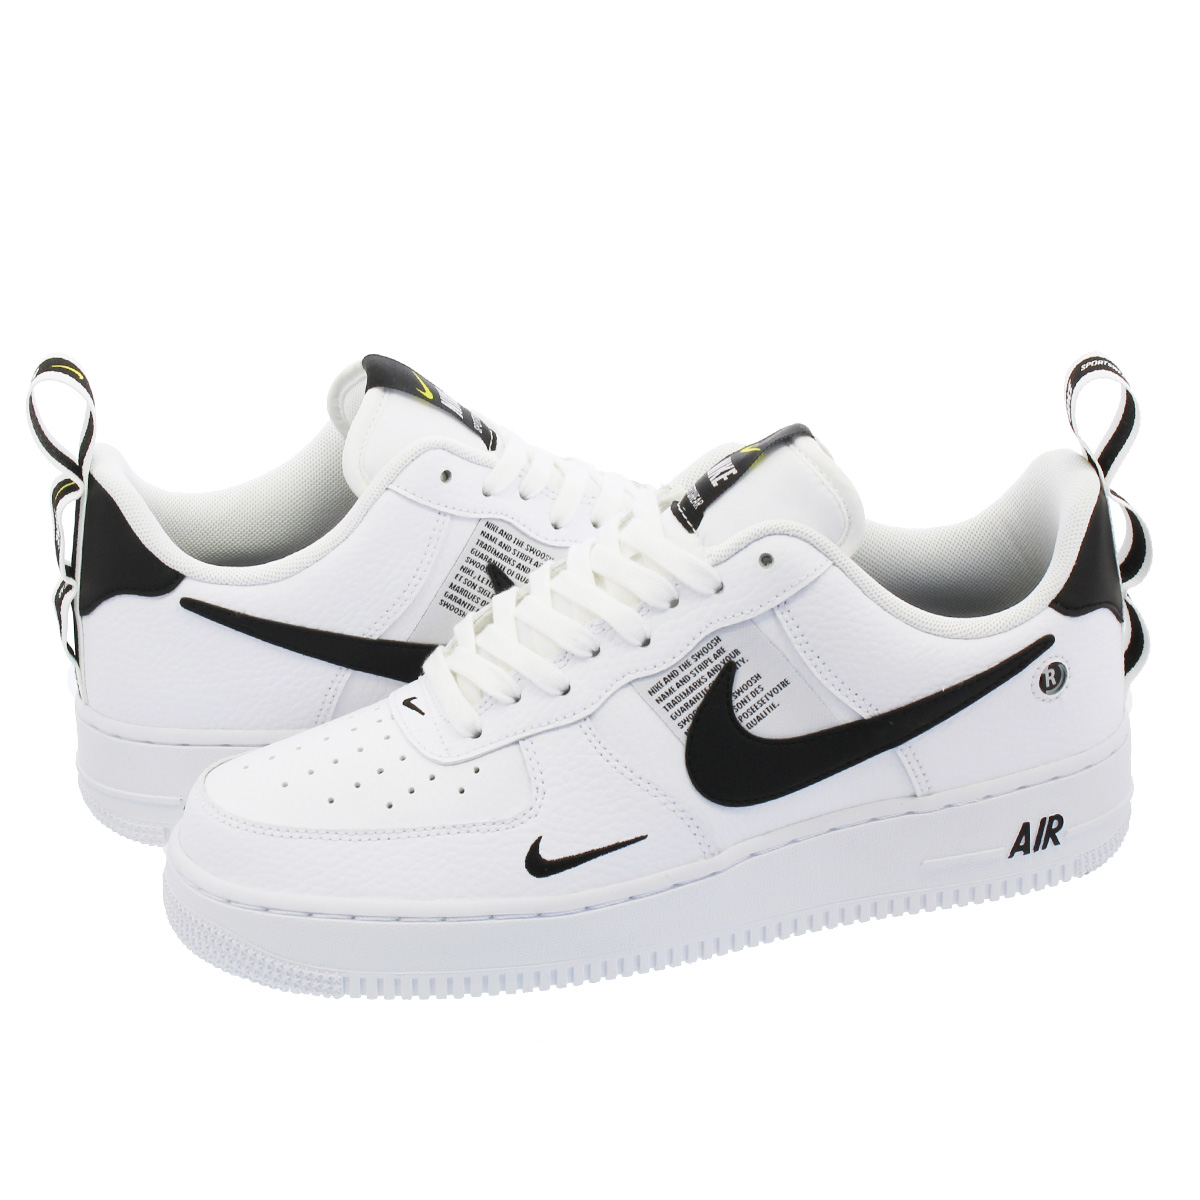 SELECT SHOP LOWTEX: NIKE AIR FORCE 1 '07 LV8 UTILITY Nike air force ...